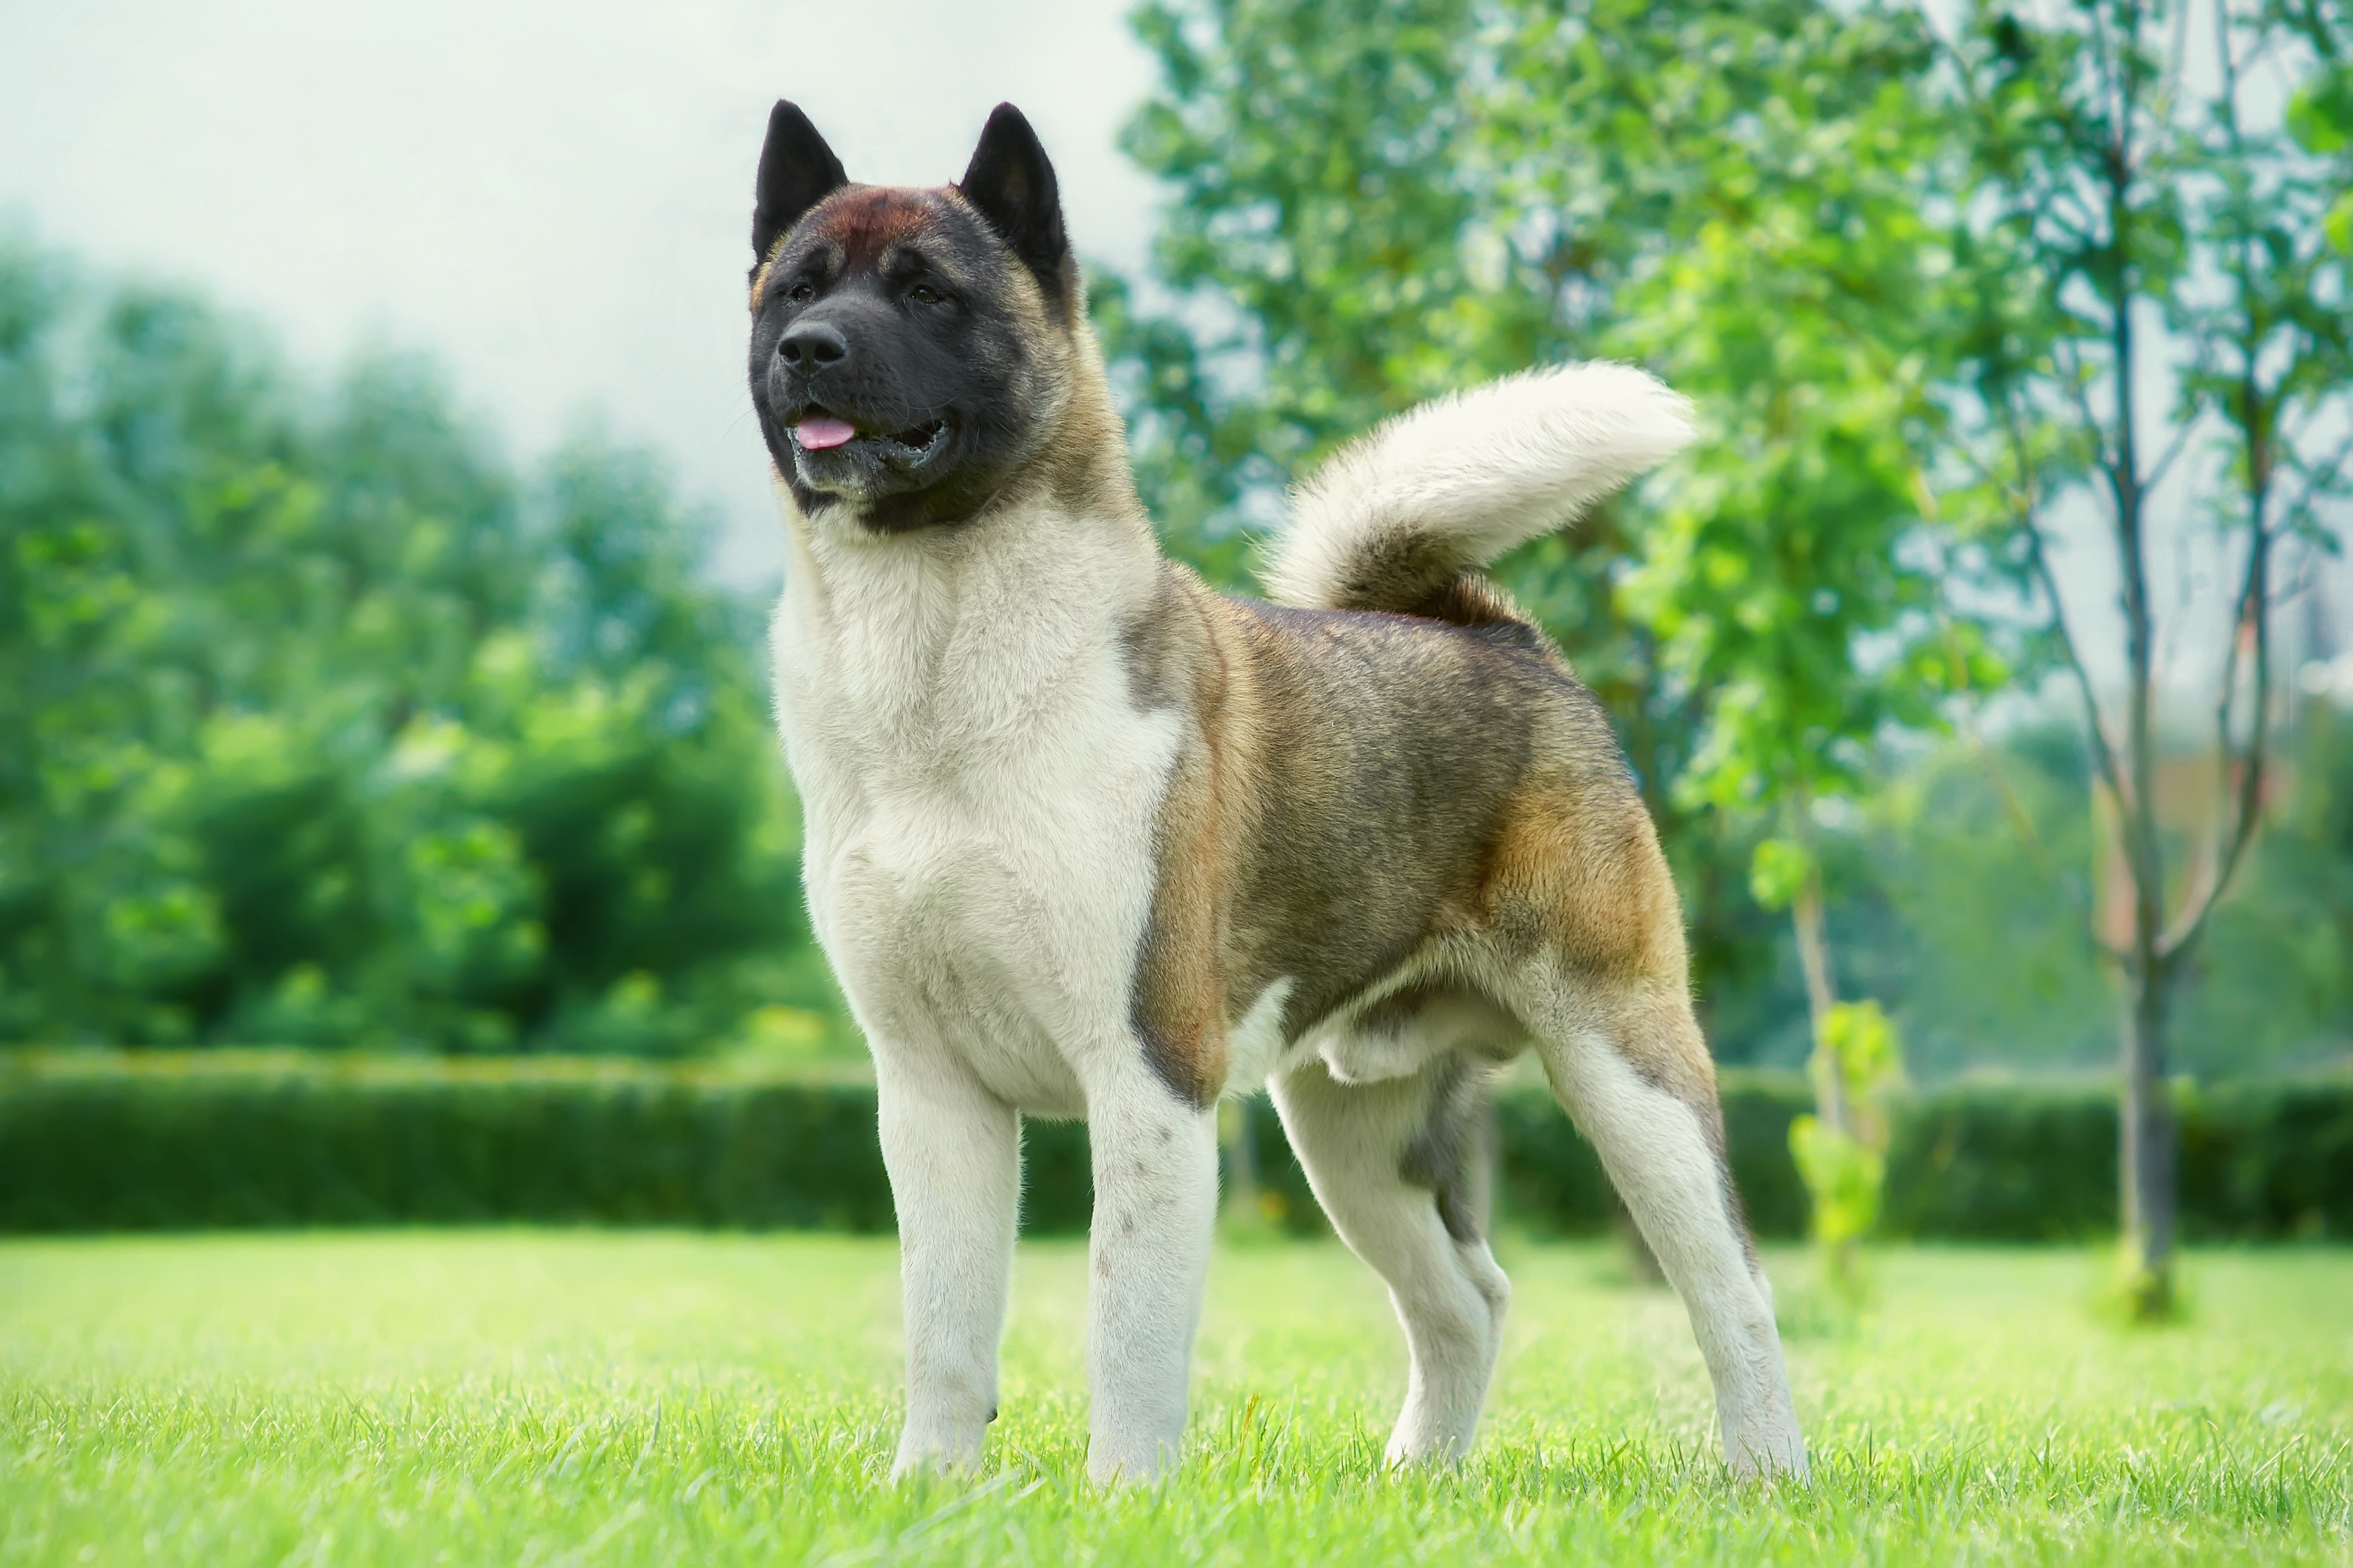 Akita dog standing in a grassy yard with trees in the background